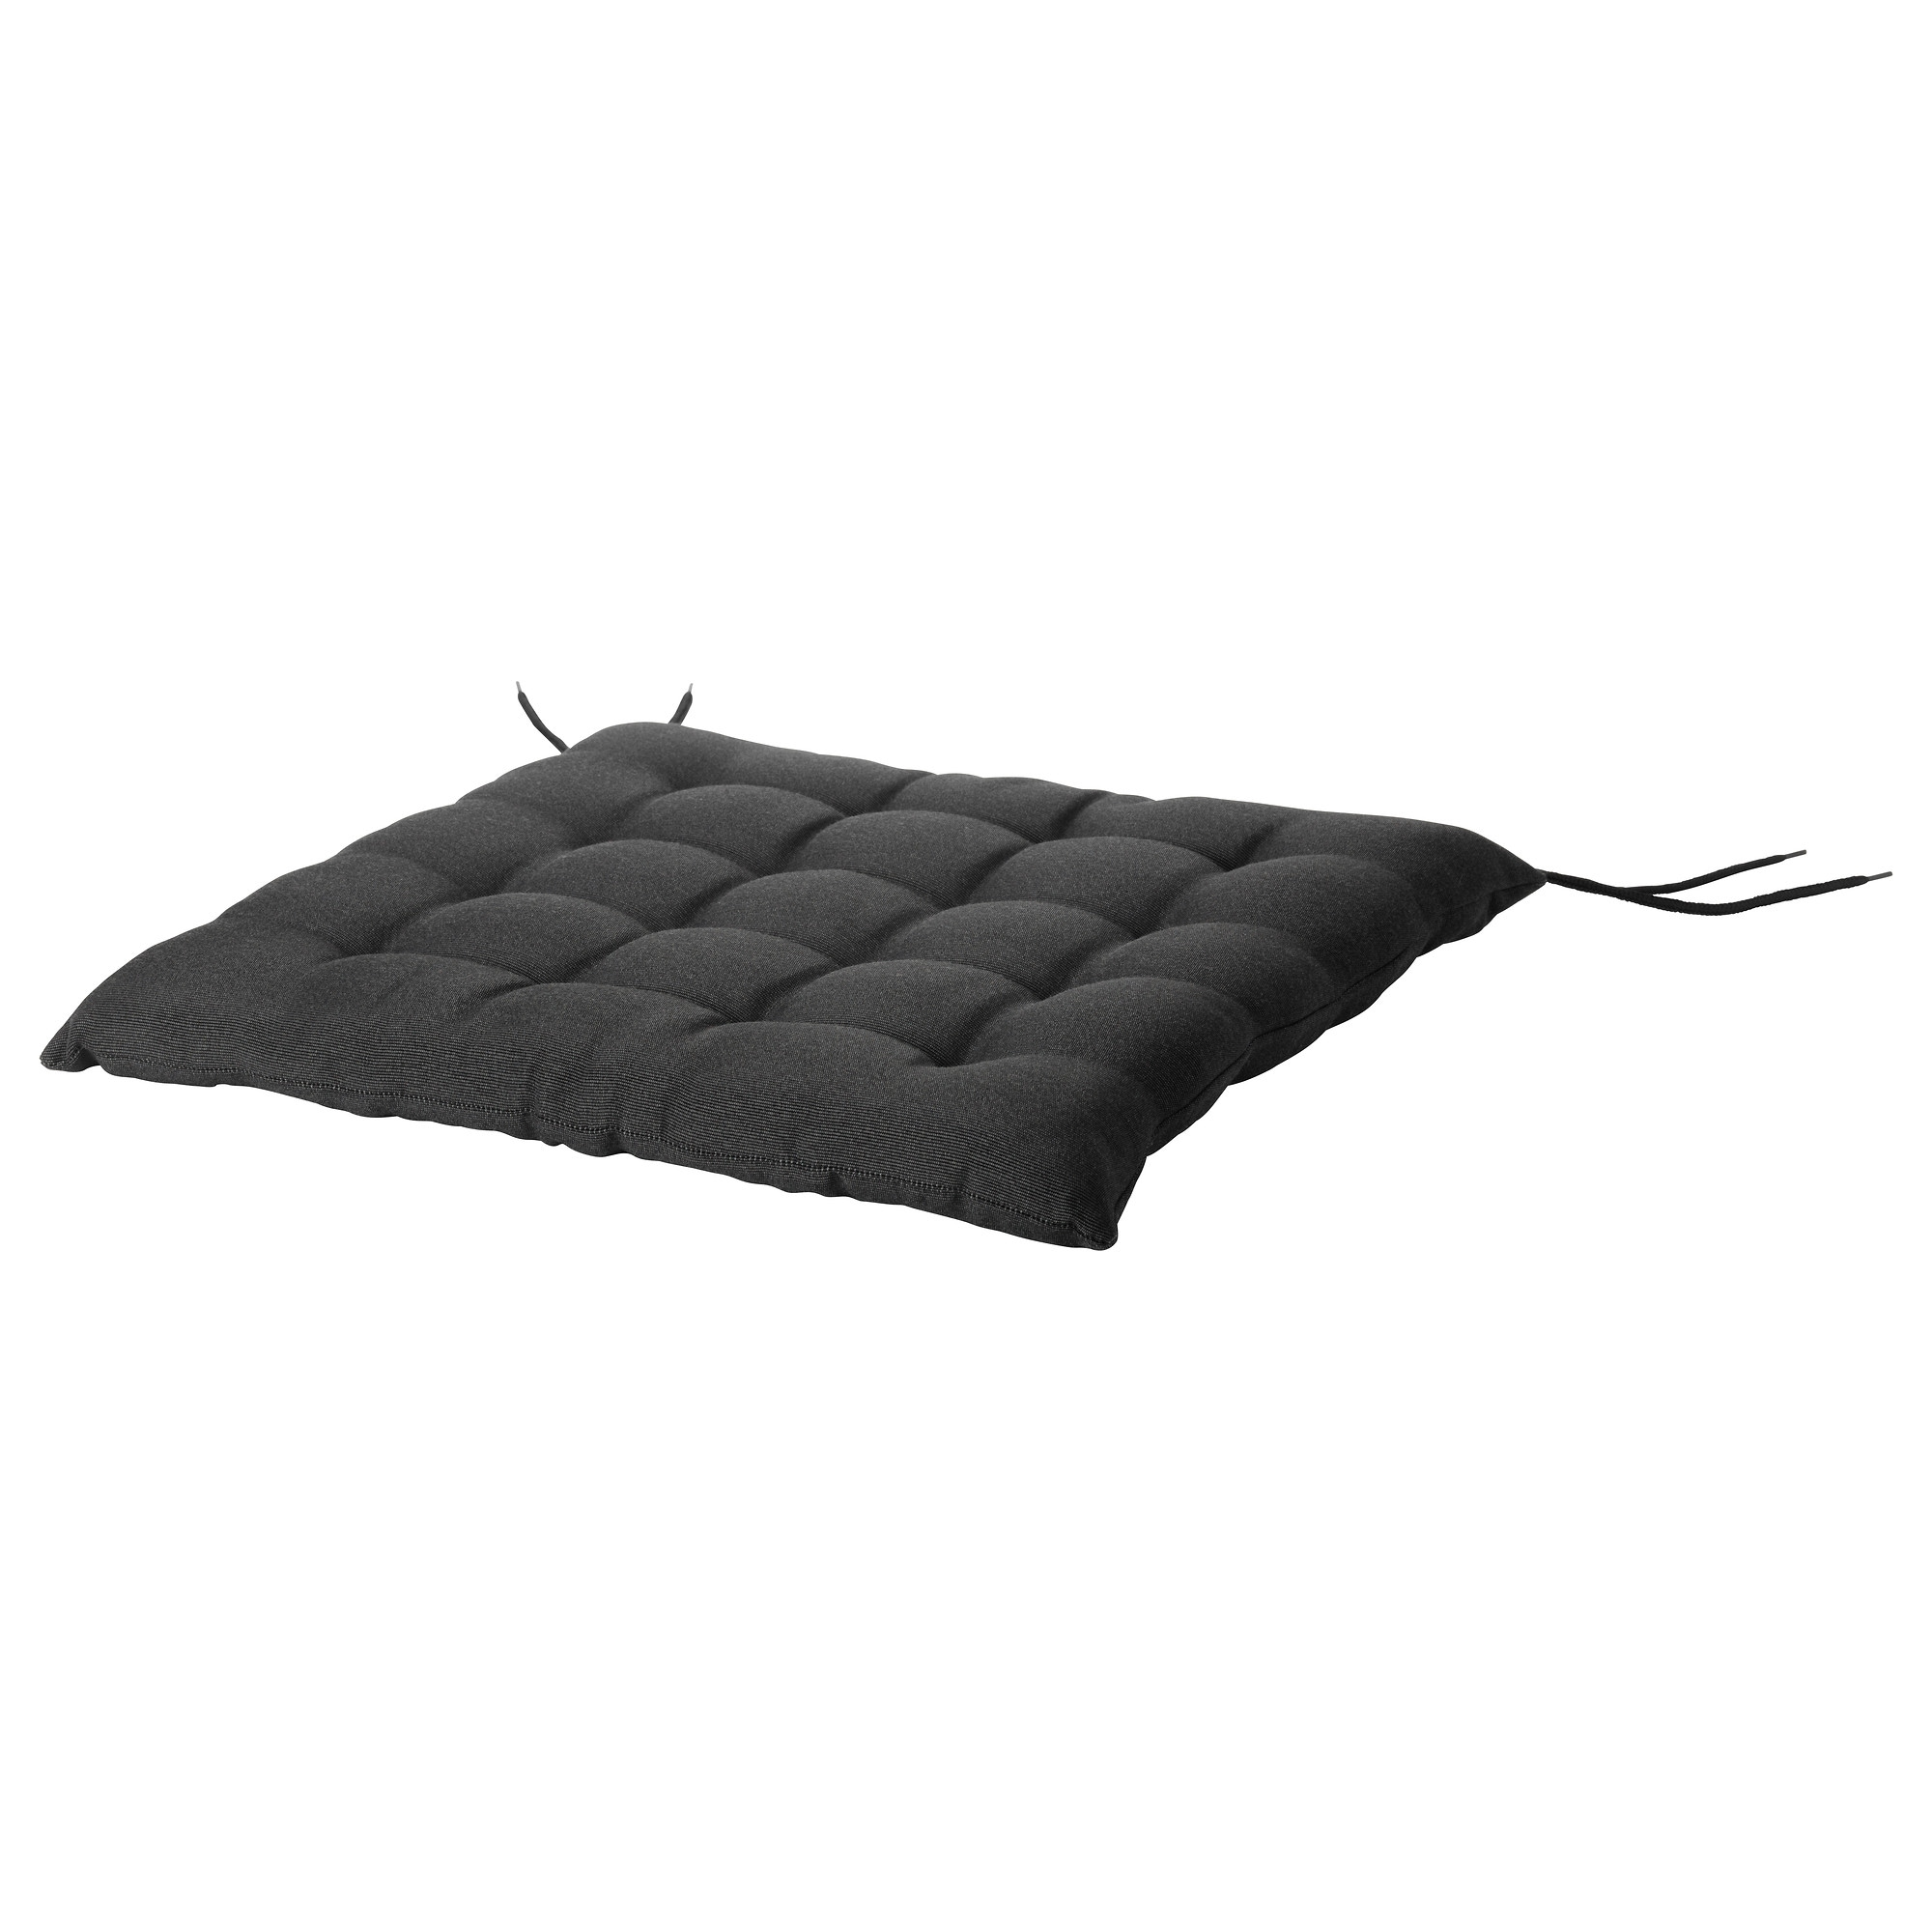 Cushions chair pads and more - H Ll Chair Pad Outdoor Black Width 20 Depth 20 Thickness